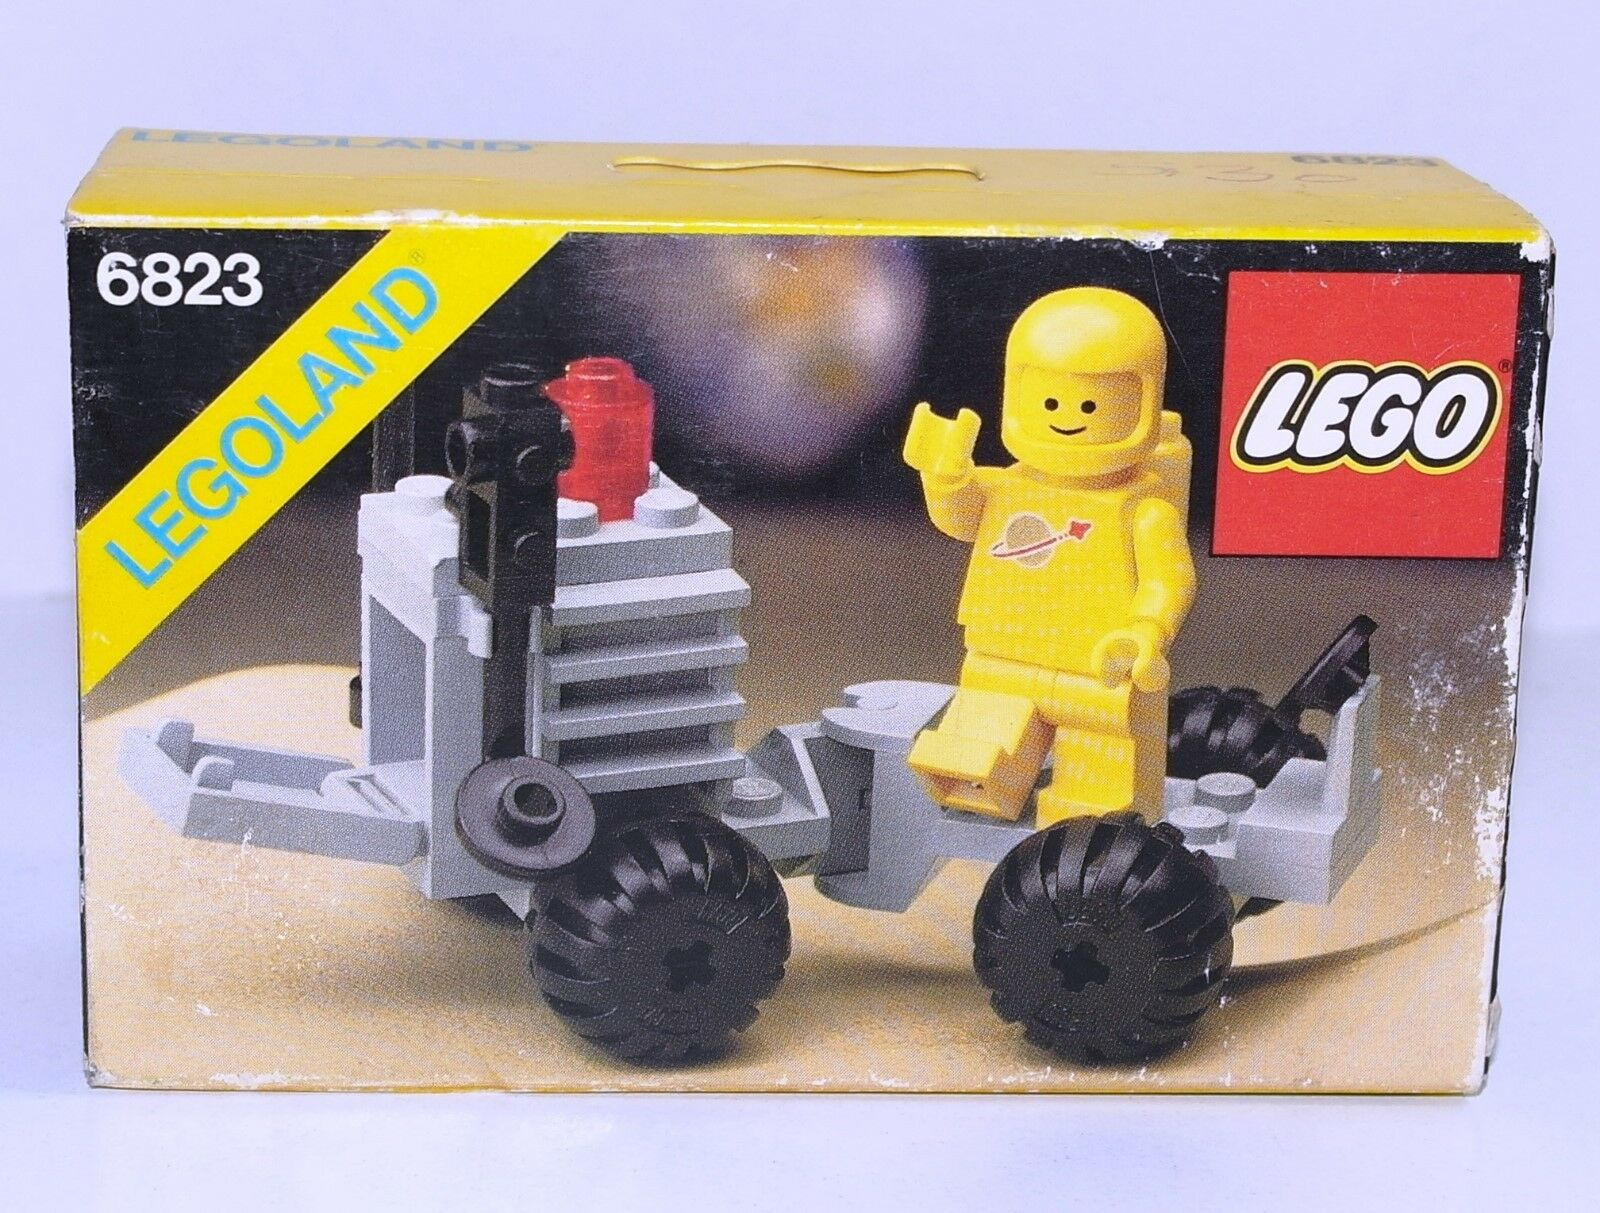 LEGO Vintage Classic Space (6823) Surface Transport - MISB New